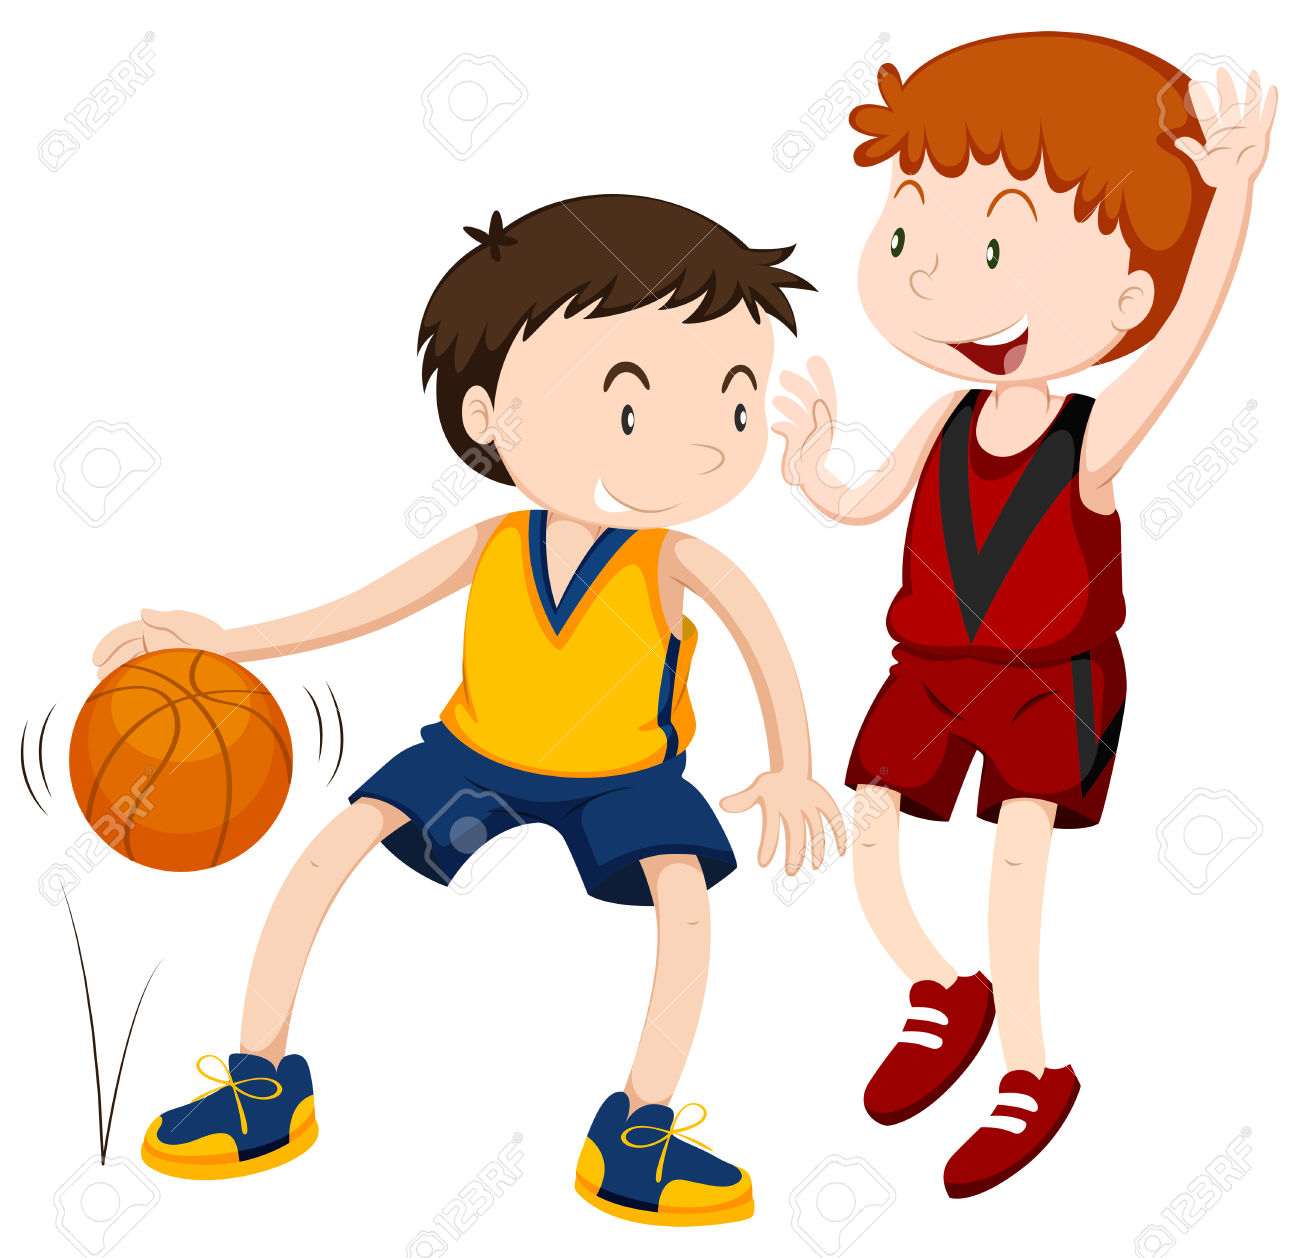 Children playing ball clipart banner free stock Kids Playing Basketball Clipart | Free download best Kids Playing ... banner free stock